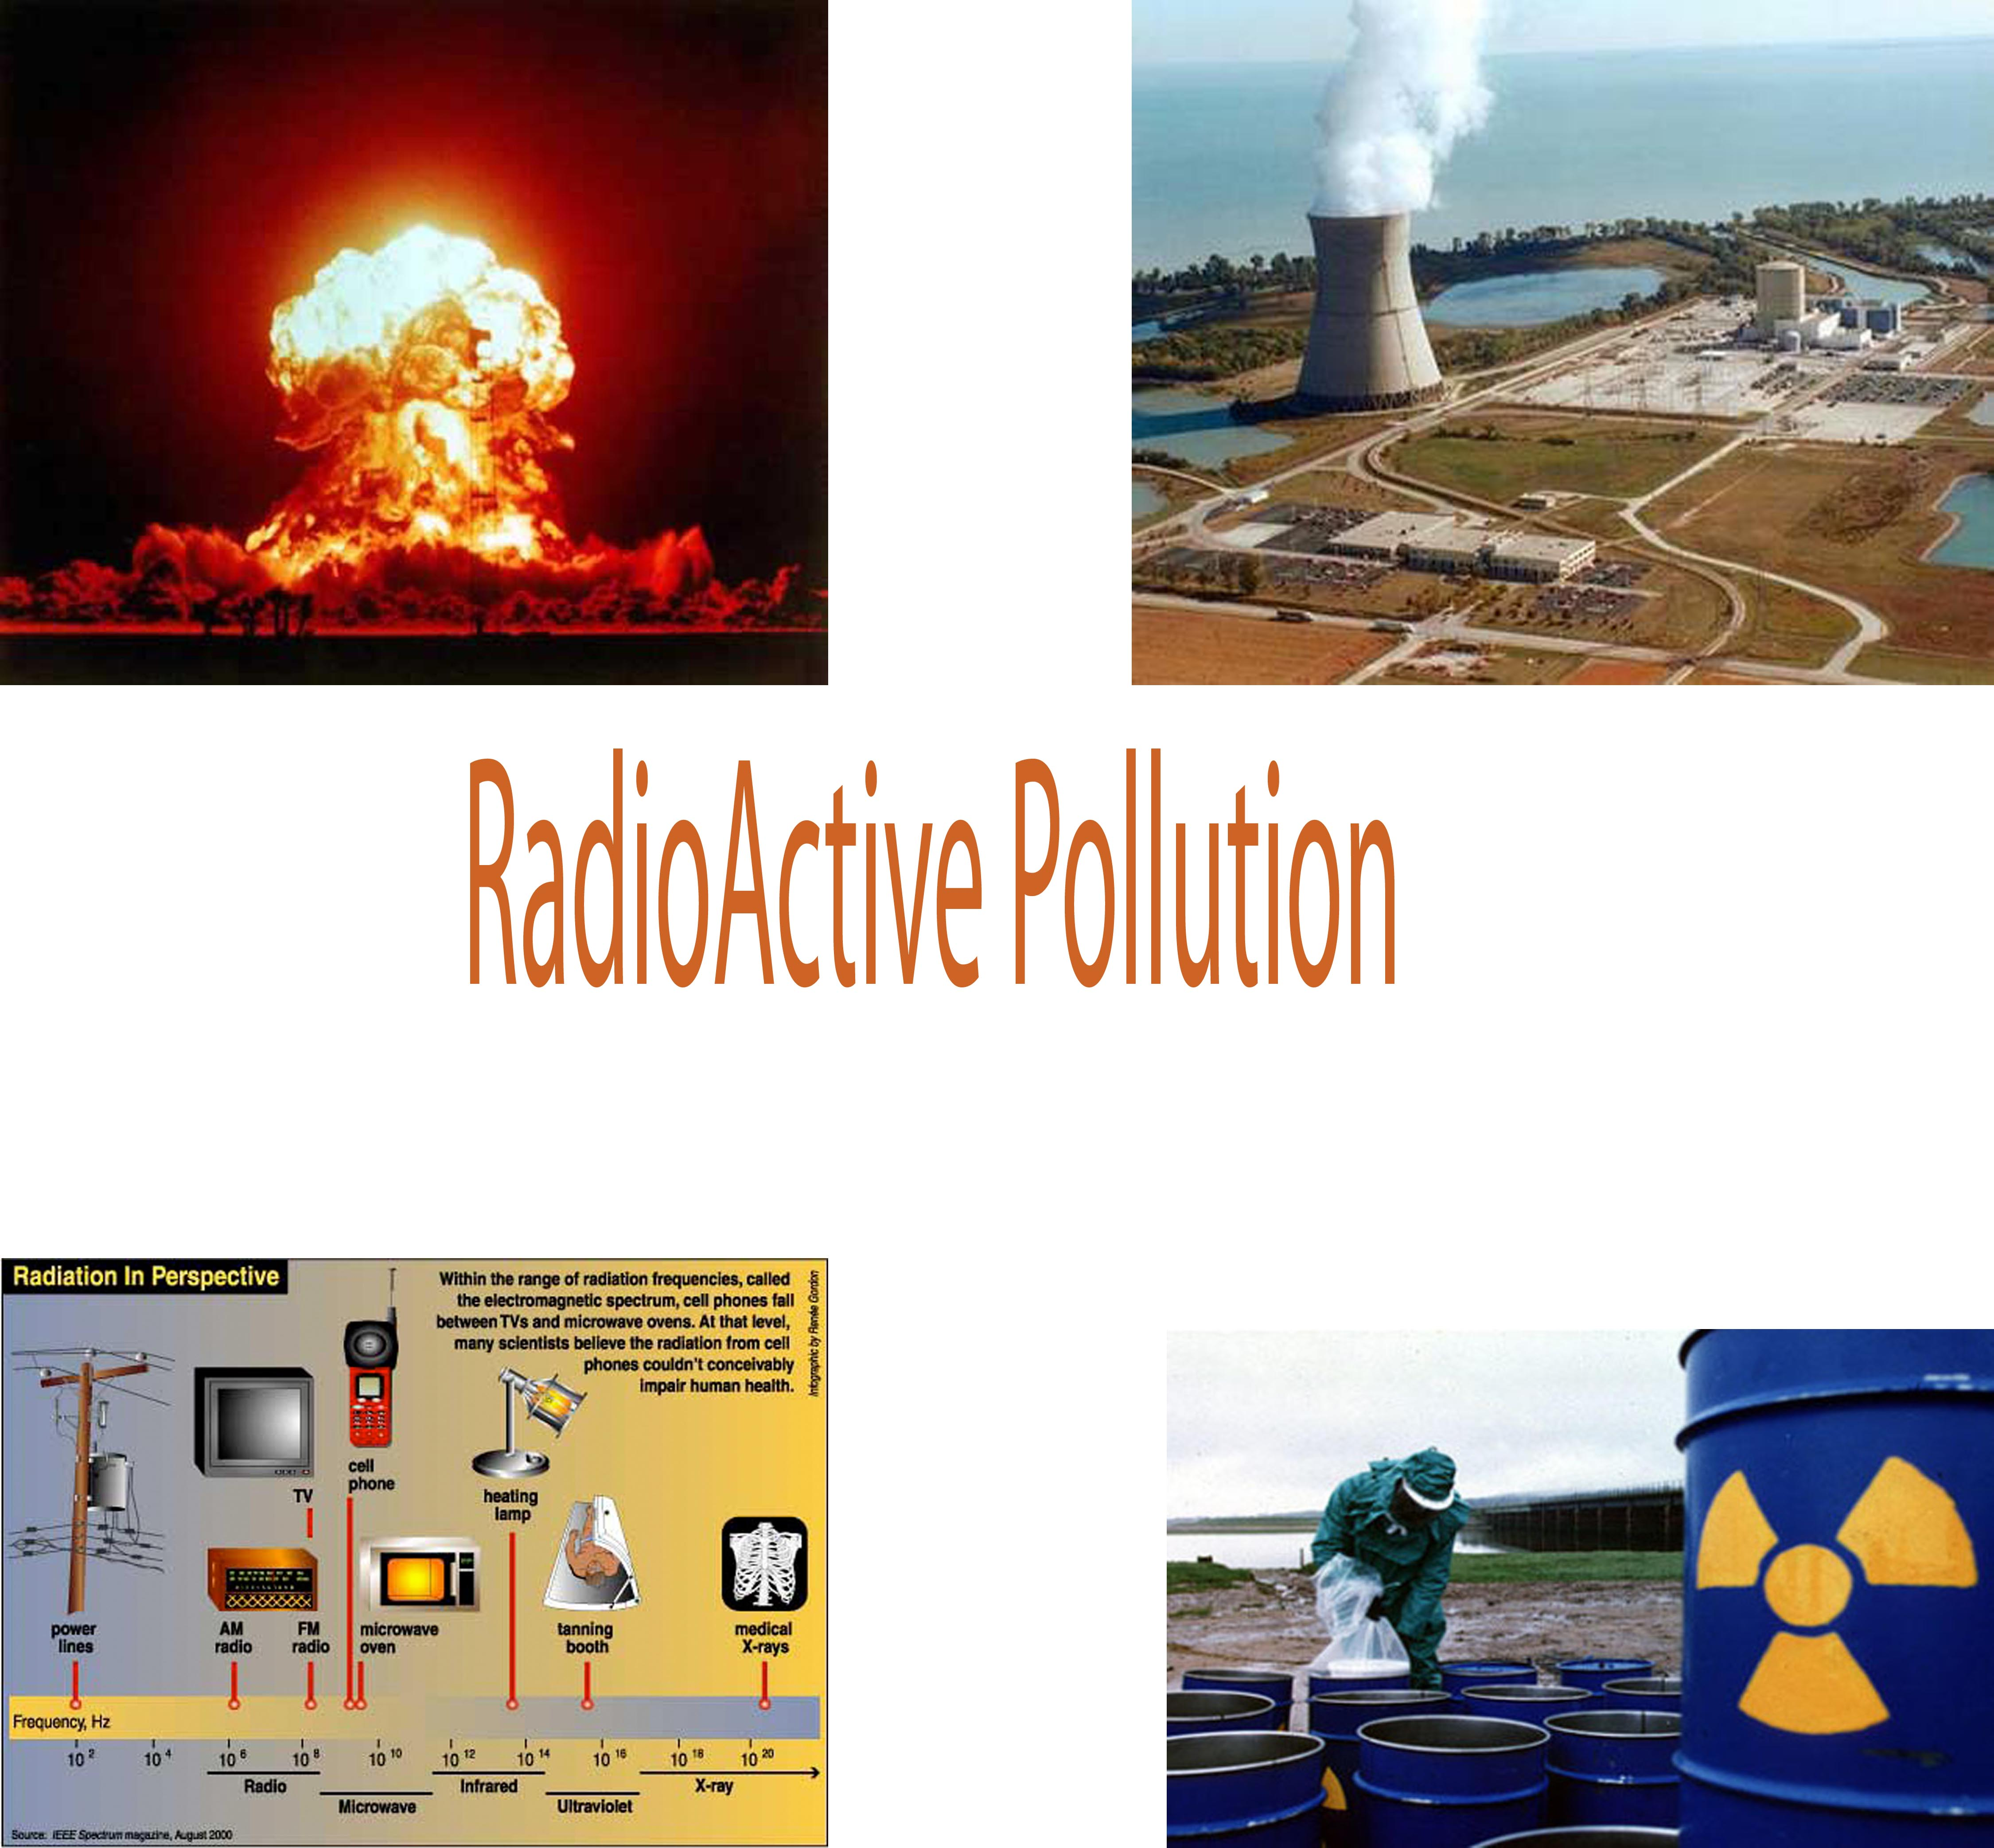 Radioactive Pollution Images - Reverse Search